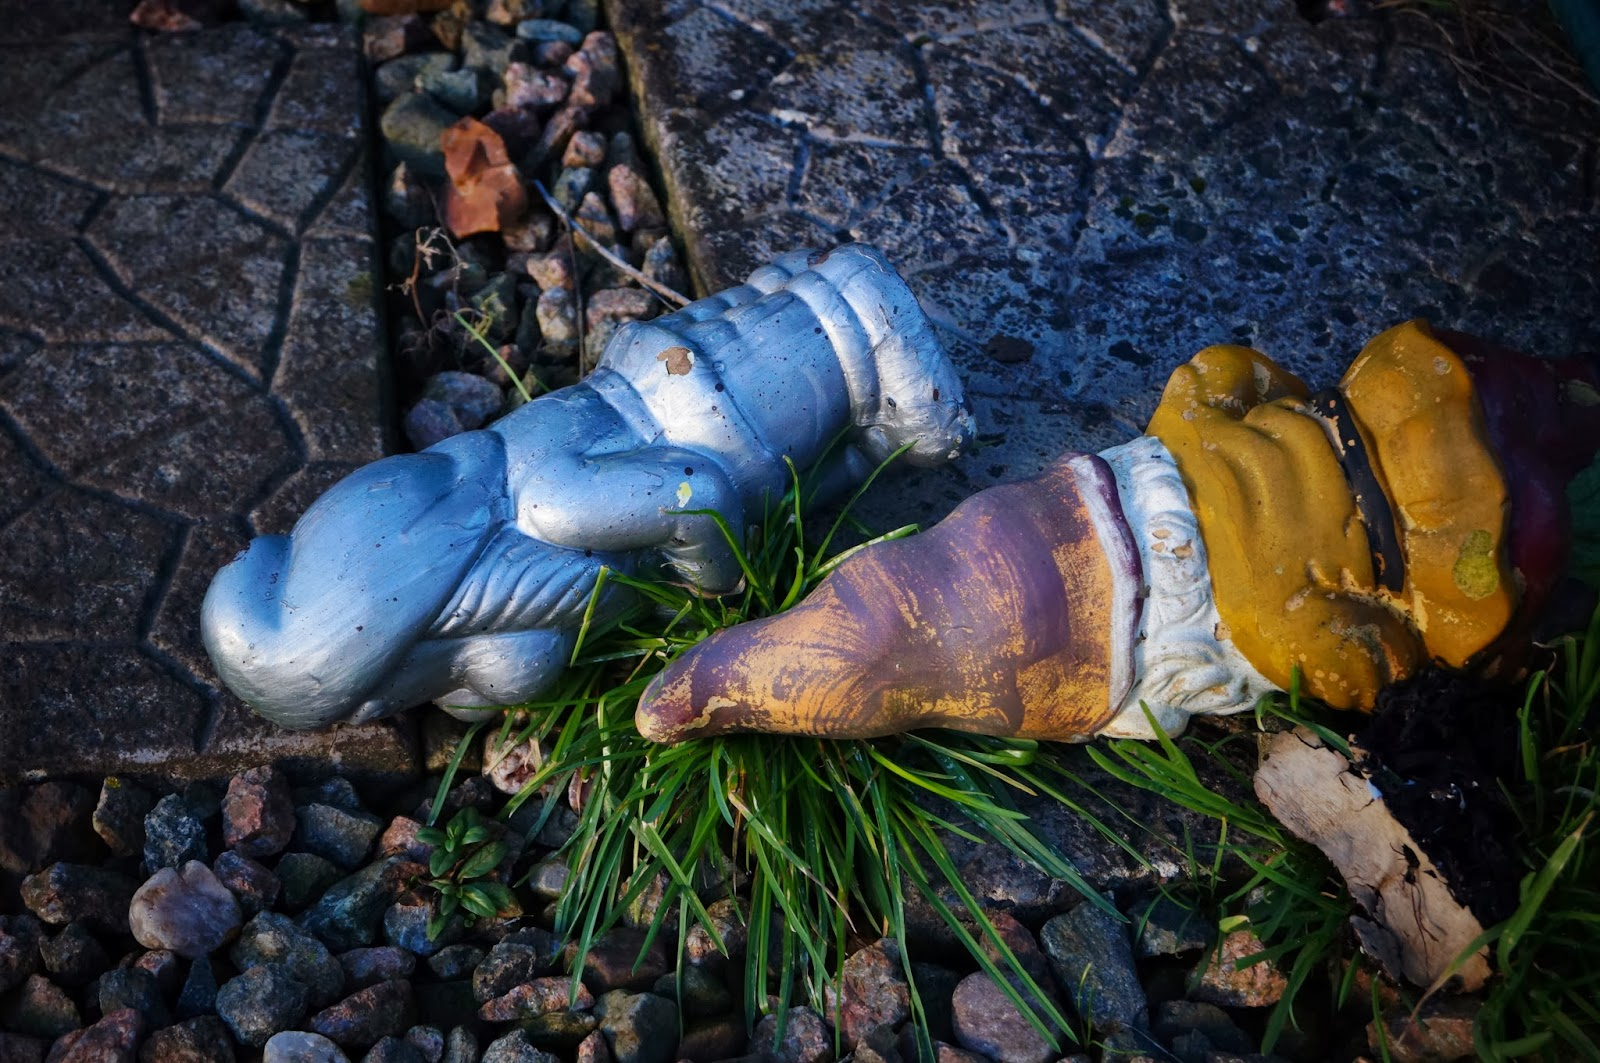 Suicidal gnomes - 'Grow Our Own' Allotment Blog